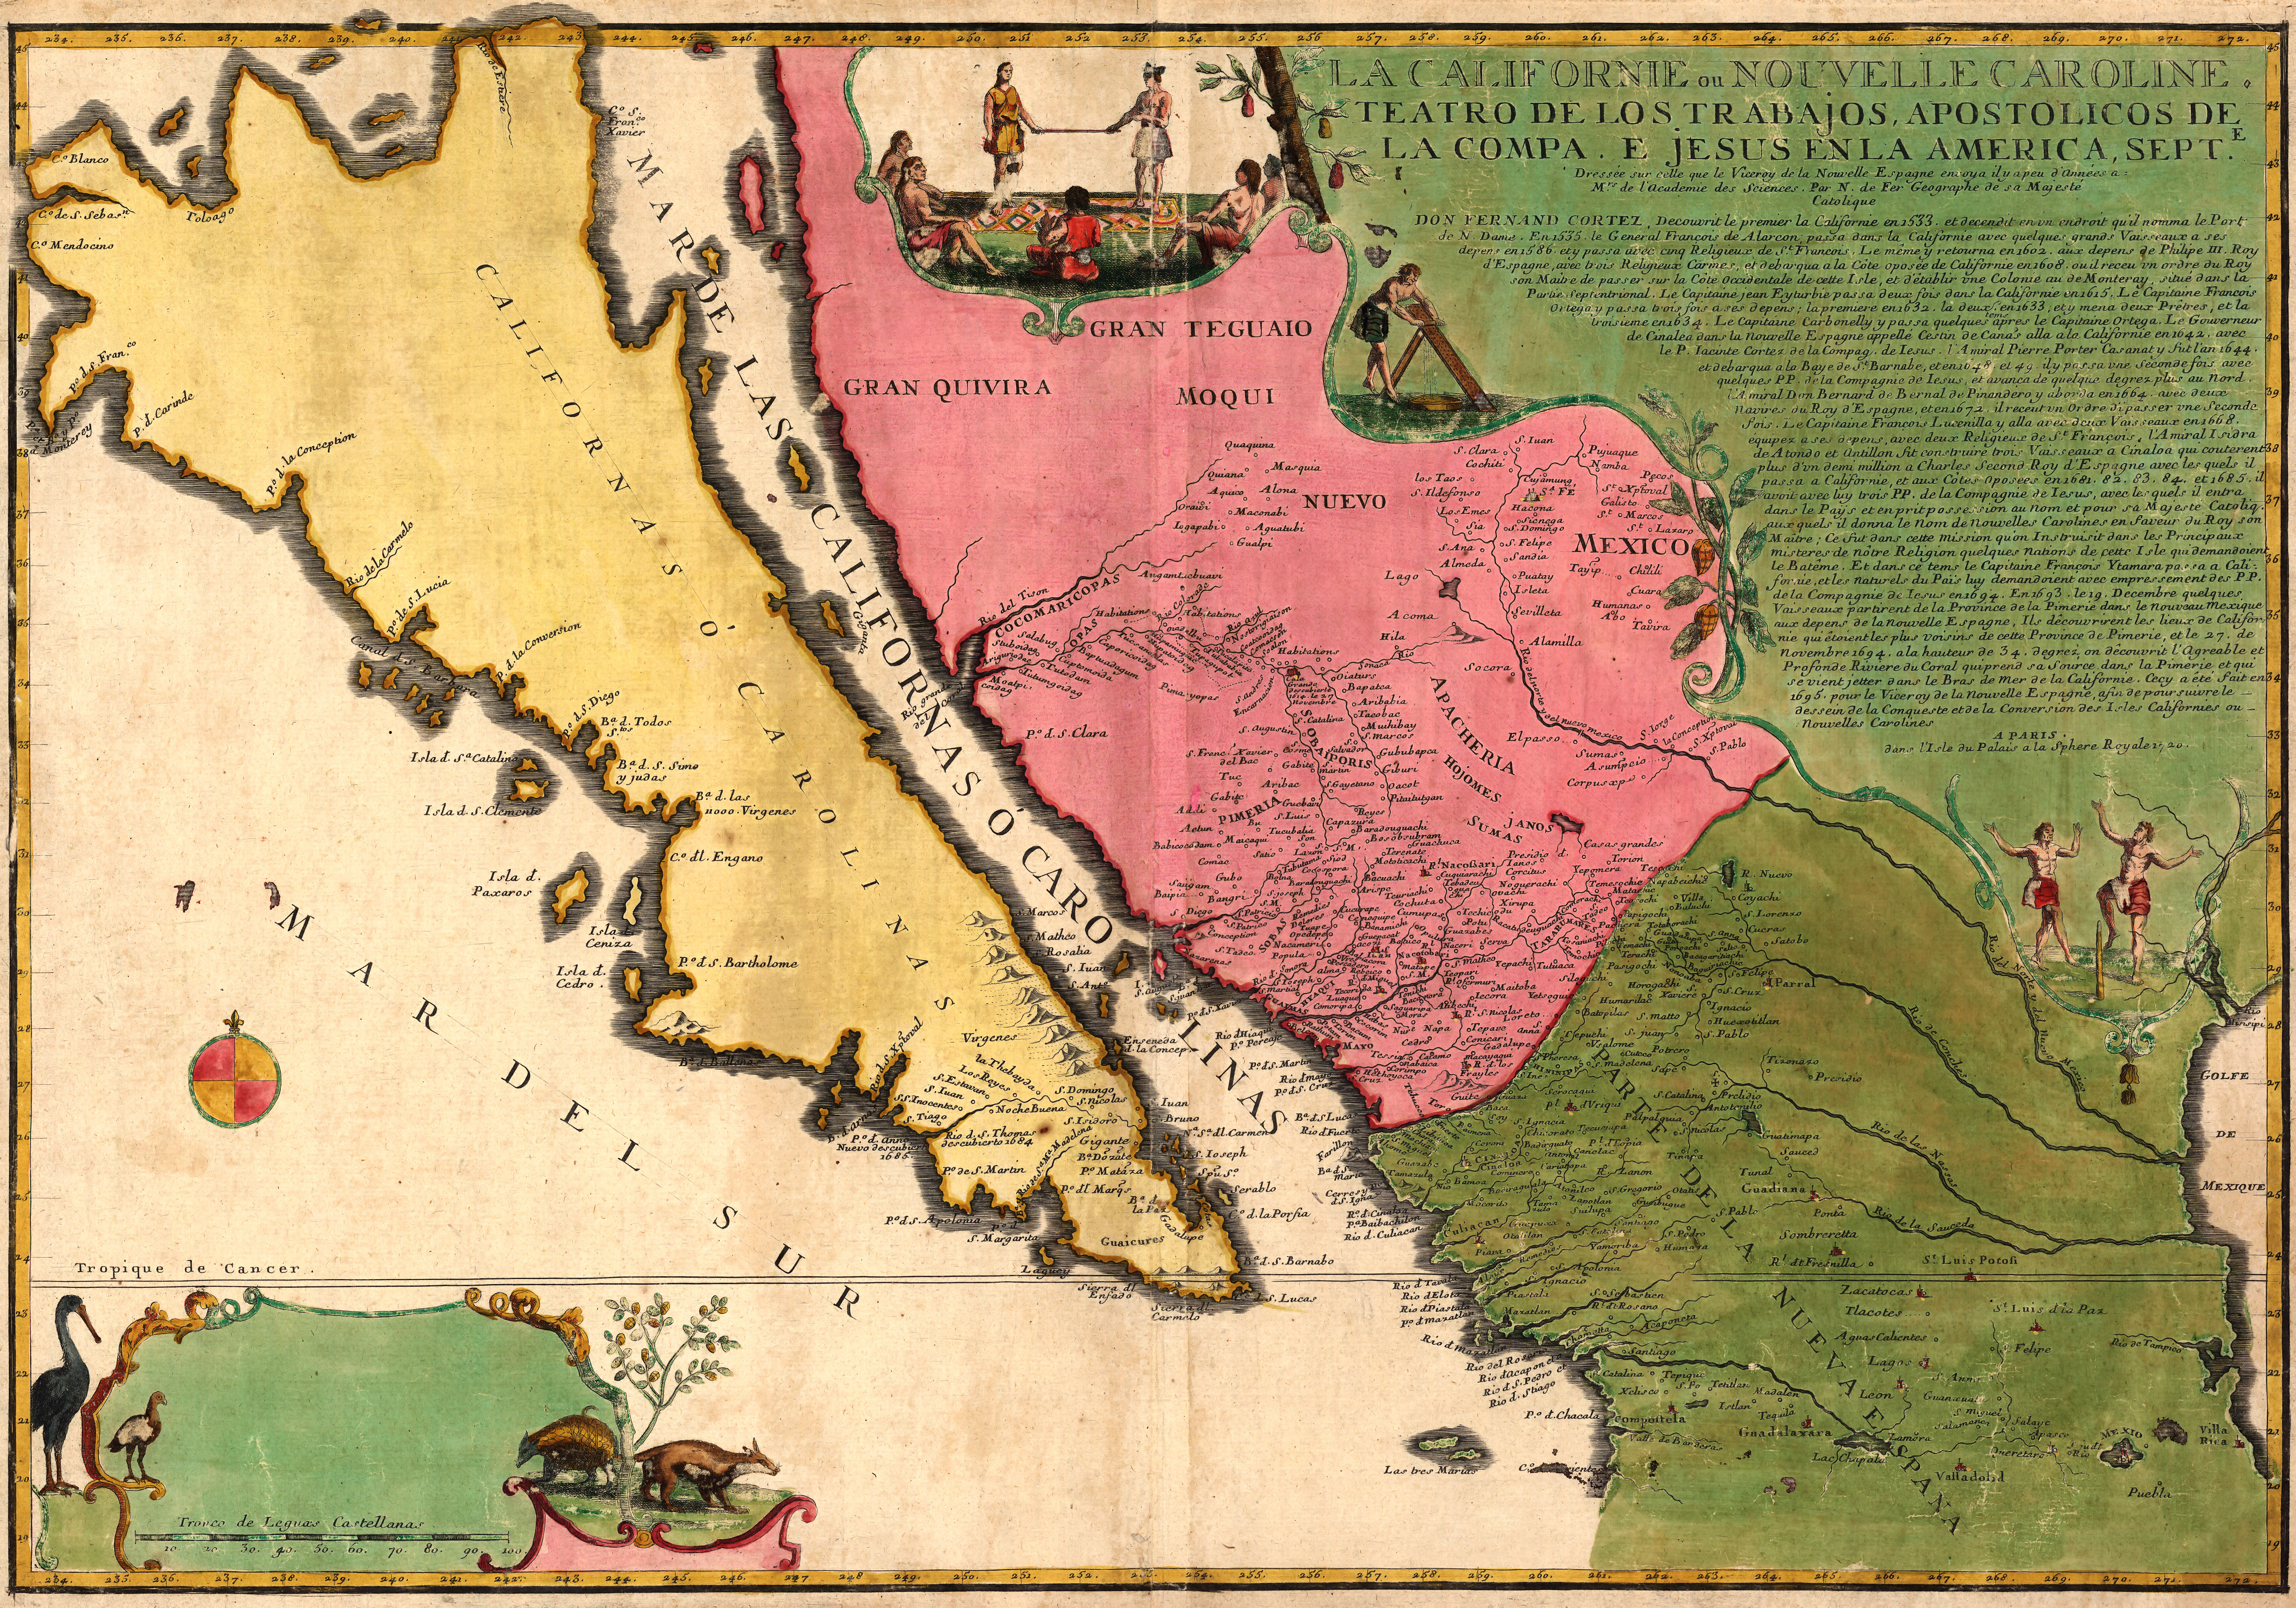 French Map Showing California as an Island 1720